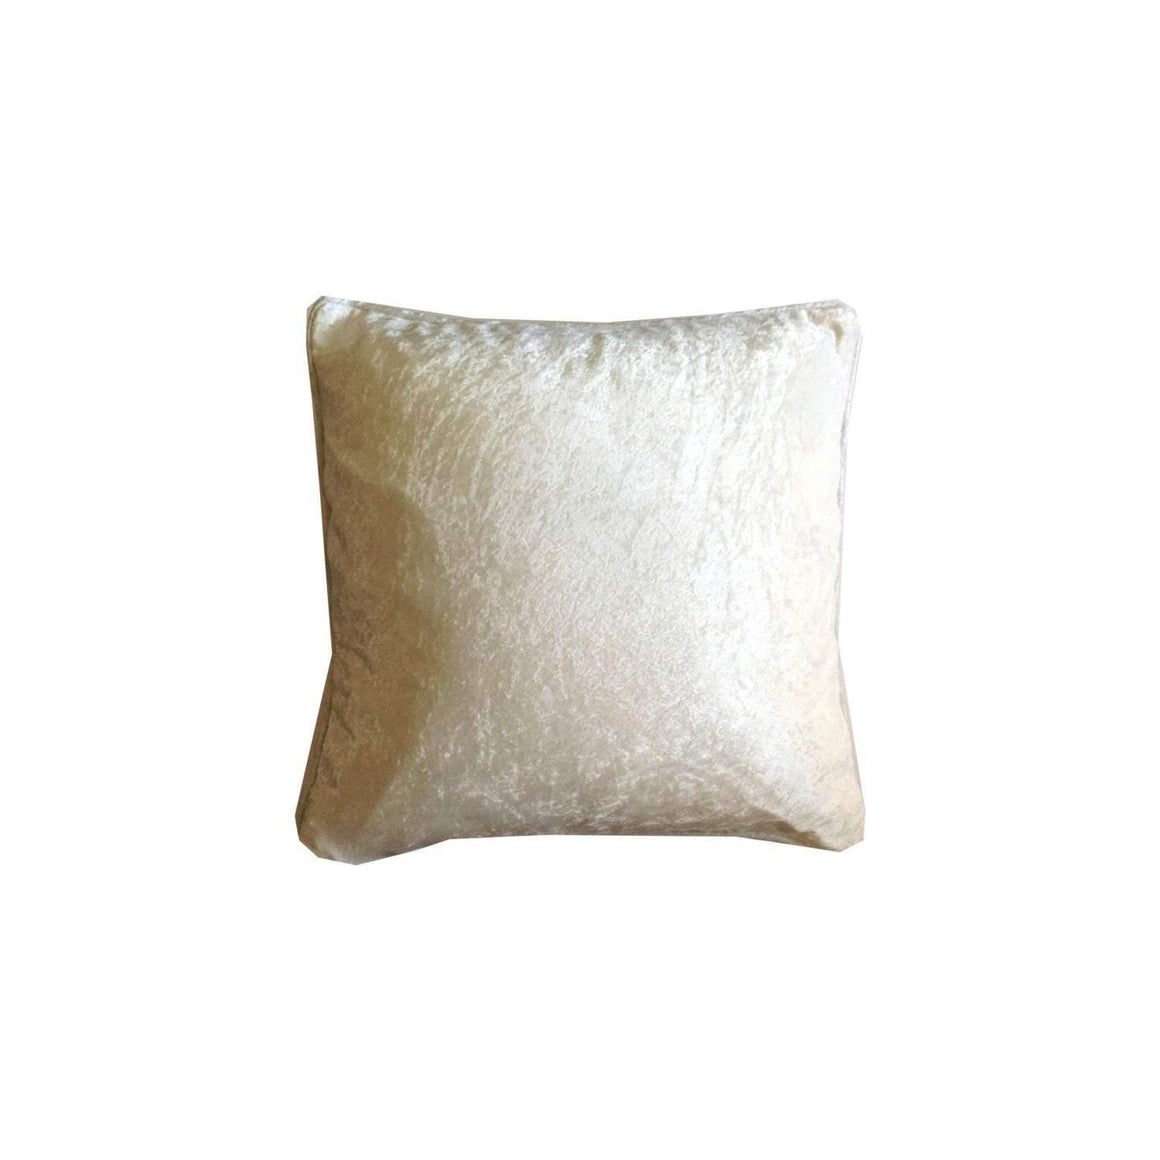 FREE SHIPPING White Velvet Pillows with piping, White Decorative Pillows, Velvet sofa pillows, White dorm decor, Velvet bed pillows - Snazzy Living